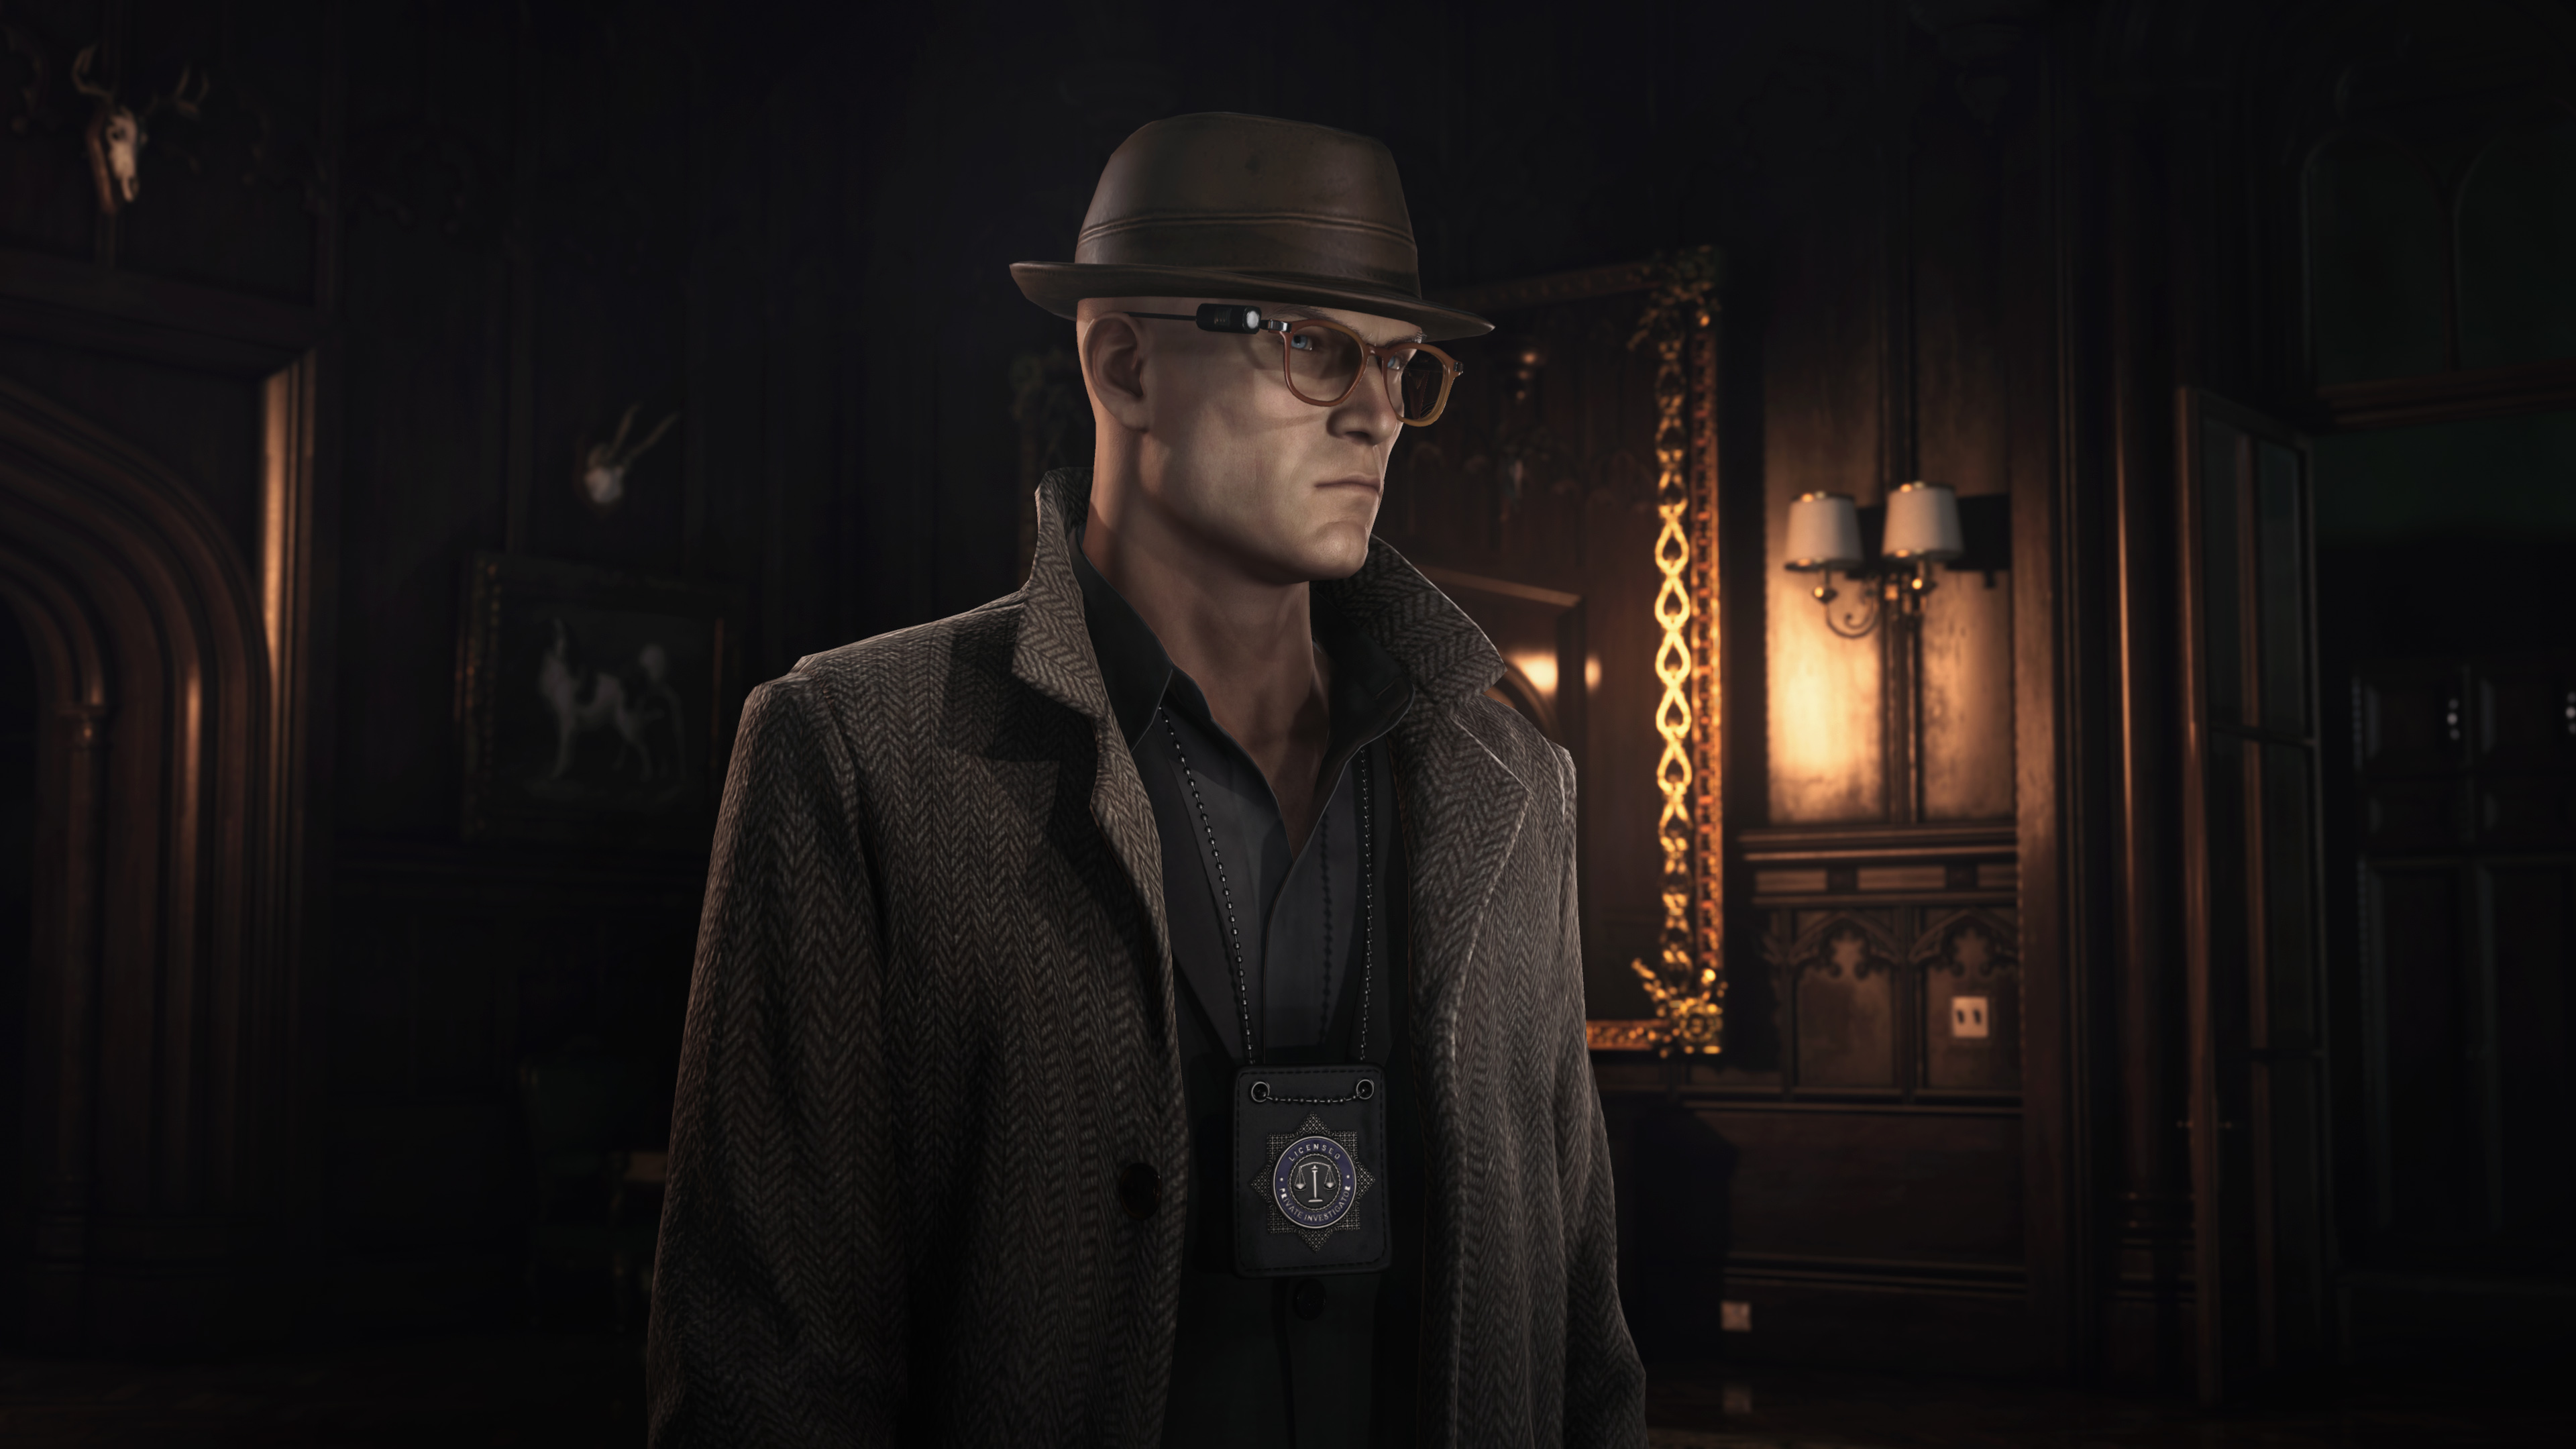 Agent 47 in disguise as a private investigator in Dartmoor in Hitman 3